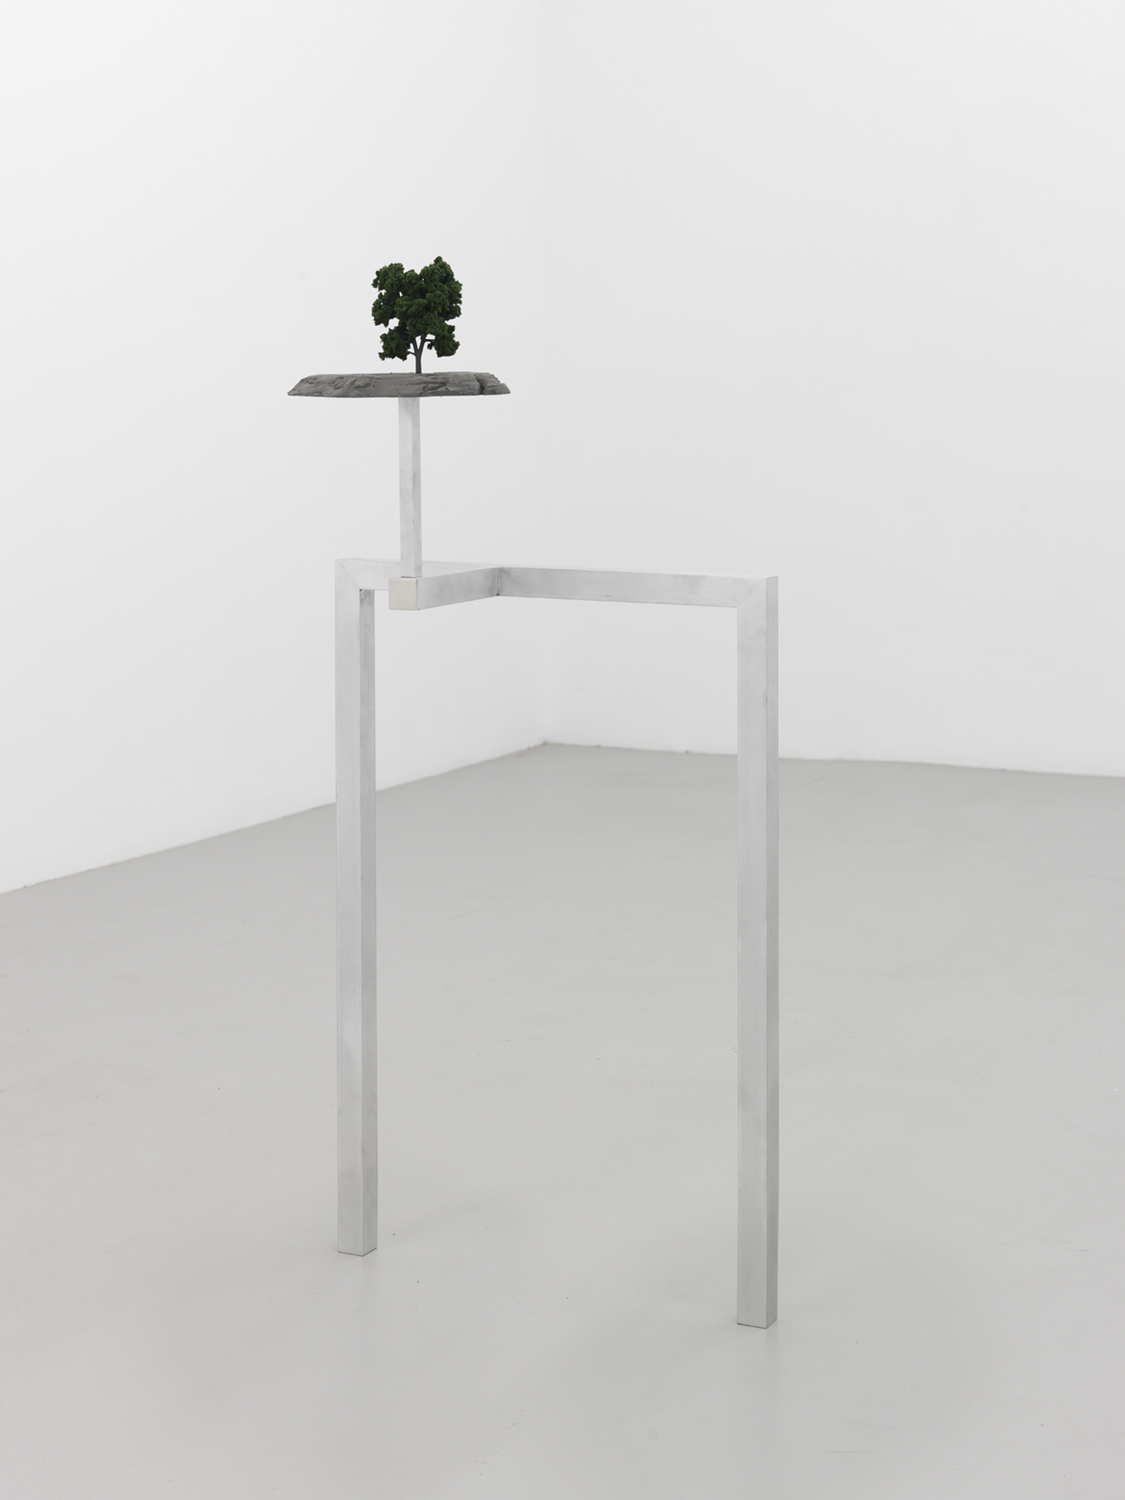 Proposal (Three Day Weekend) , 2015 Aluminum, foam, iron powder and plastic 50 x 24 x 14 inches